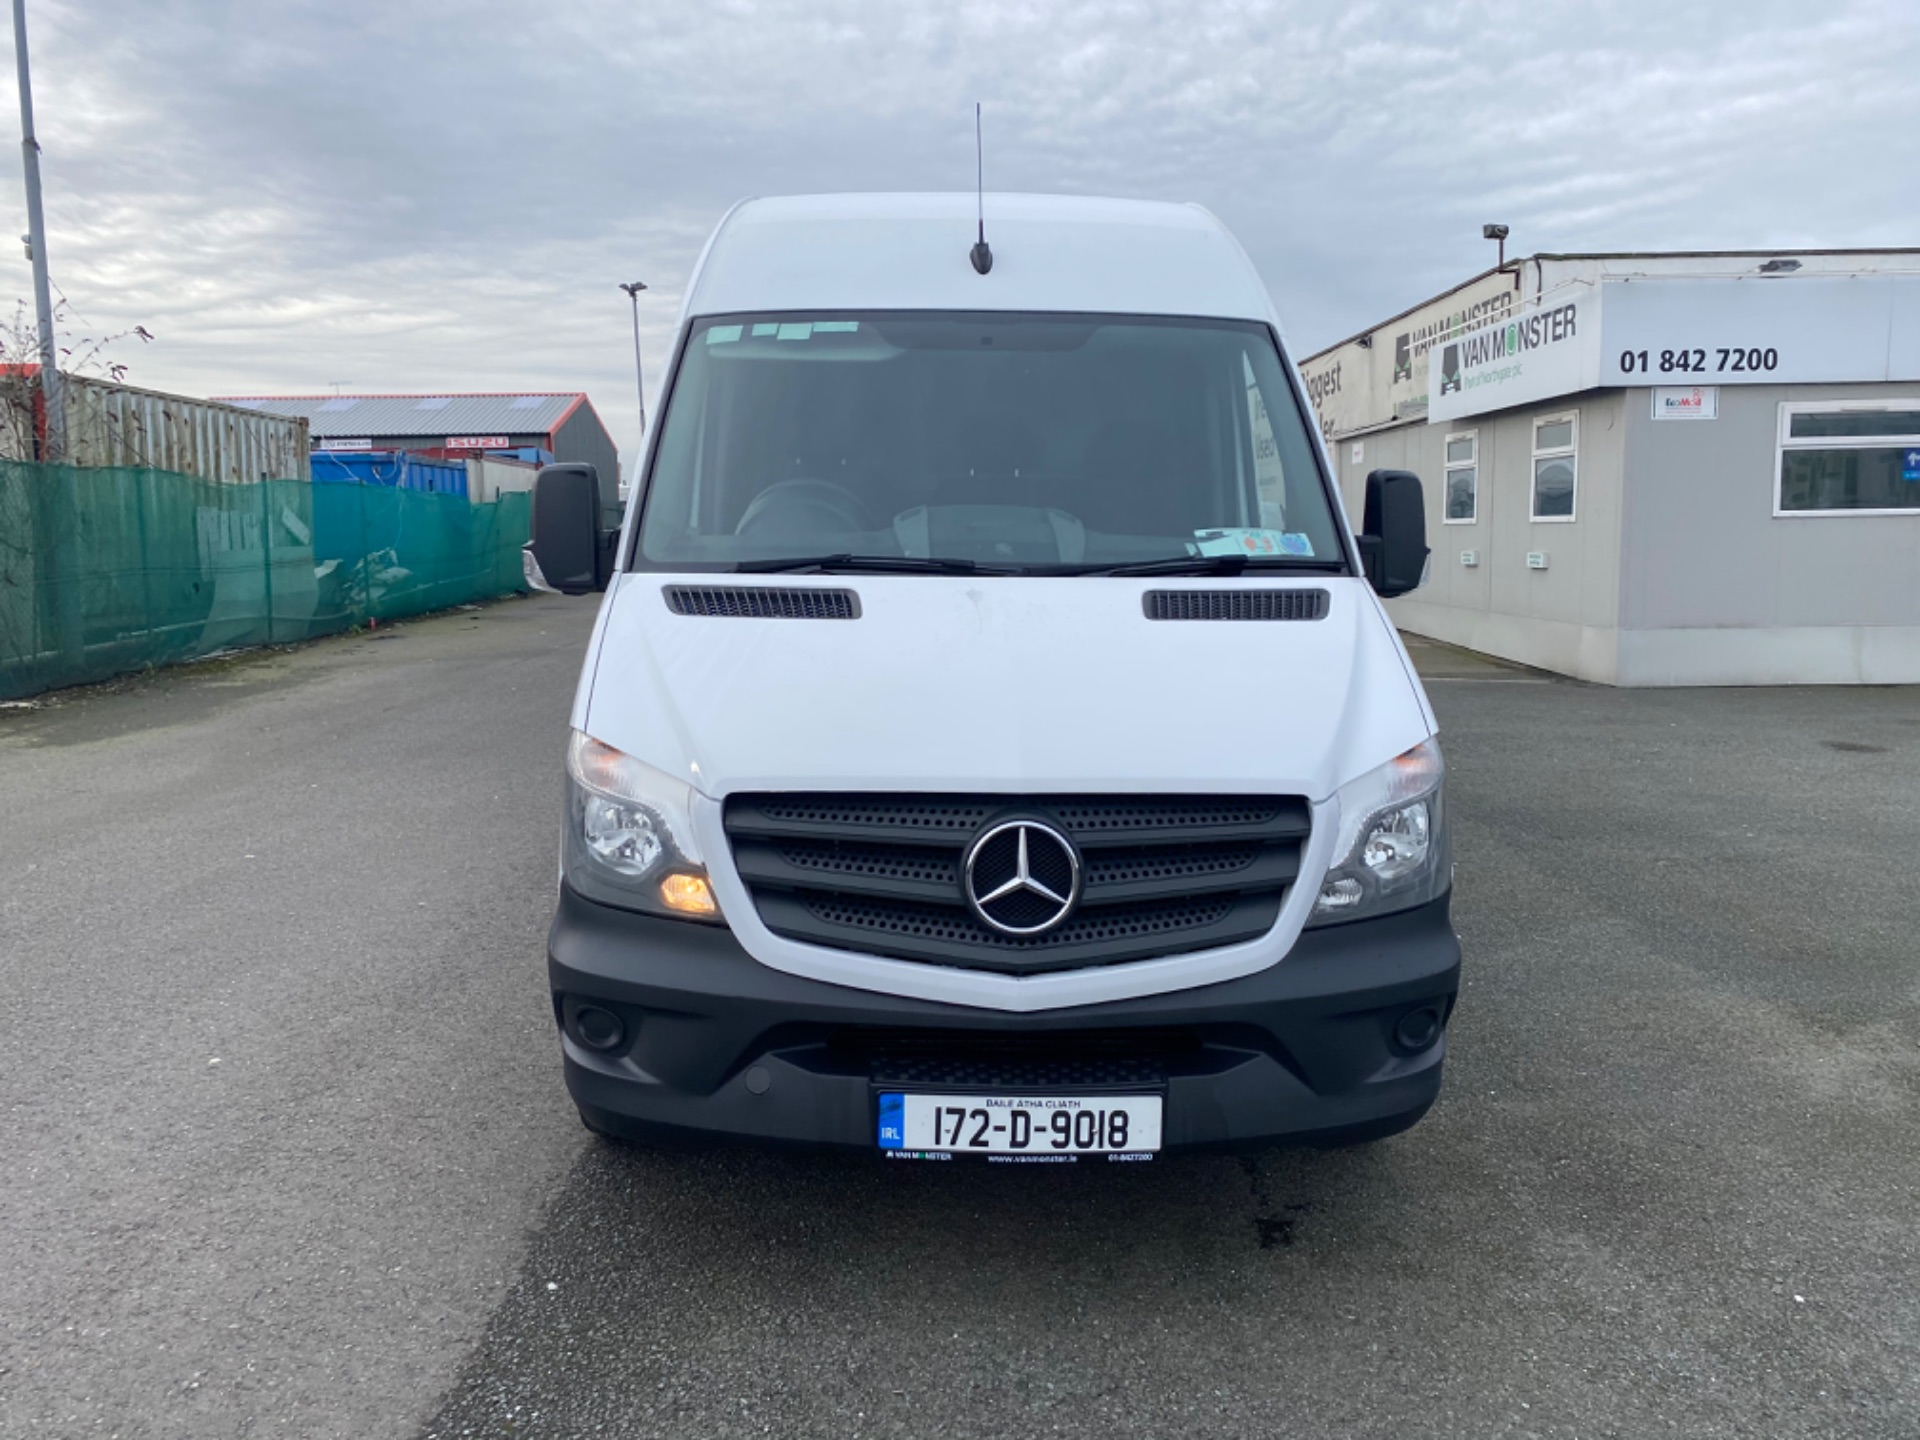 2017 Mercedes-Benz Sprinter 314/36 EU6 6DR (172D9018) Thumbnail 2